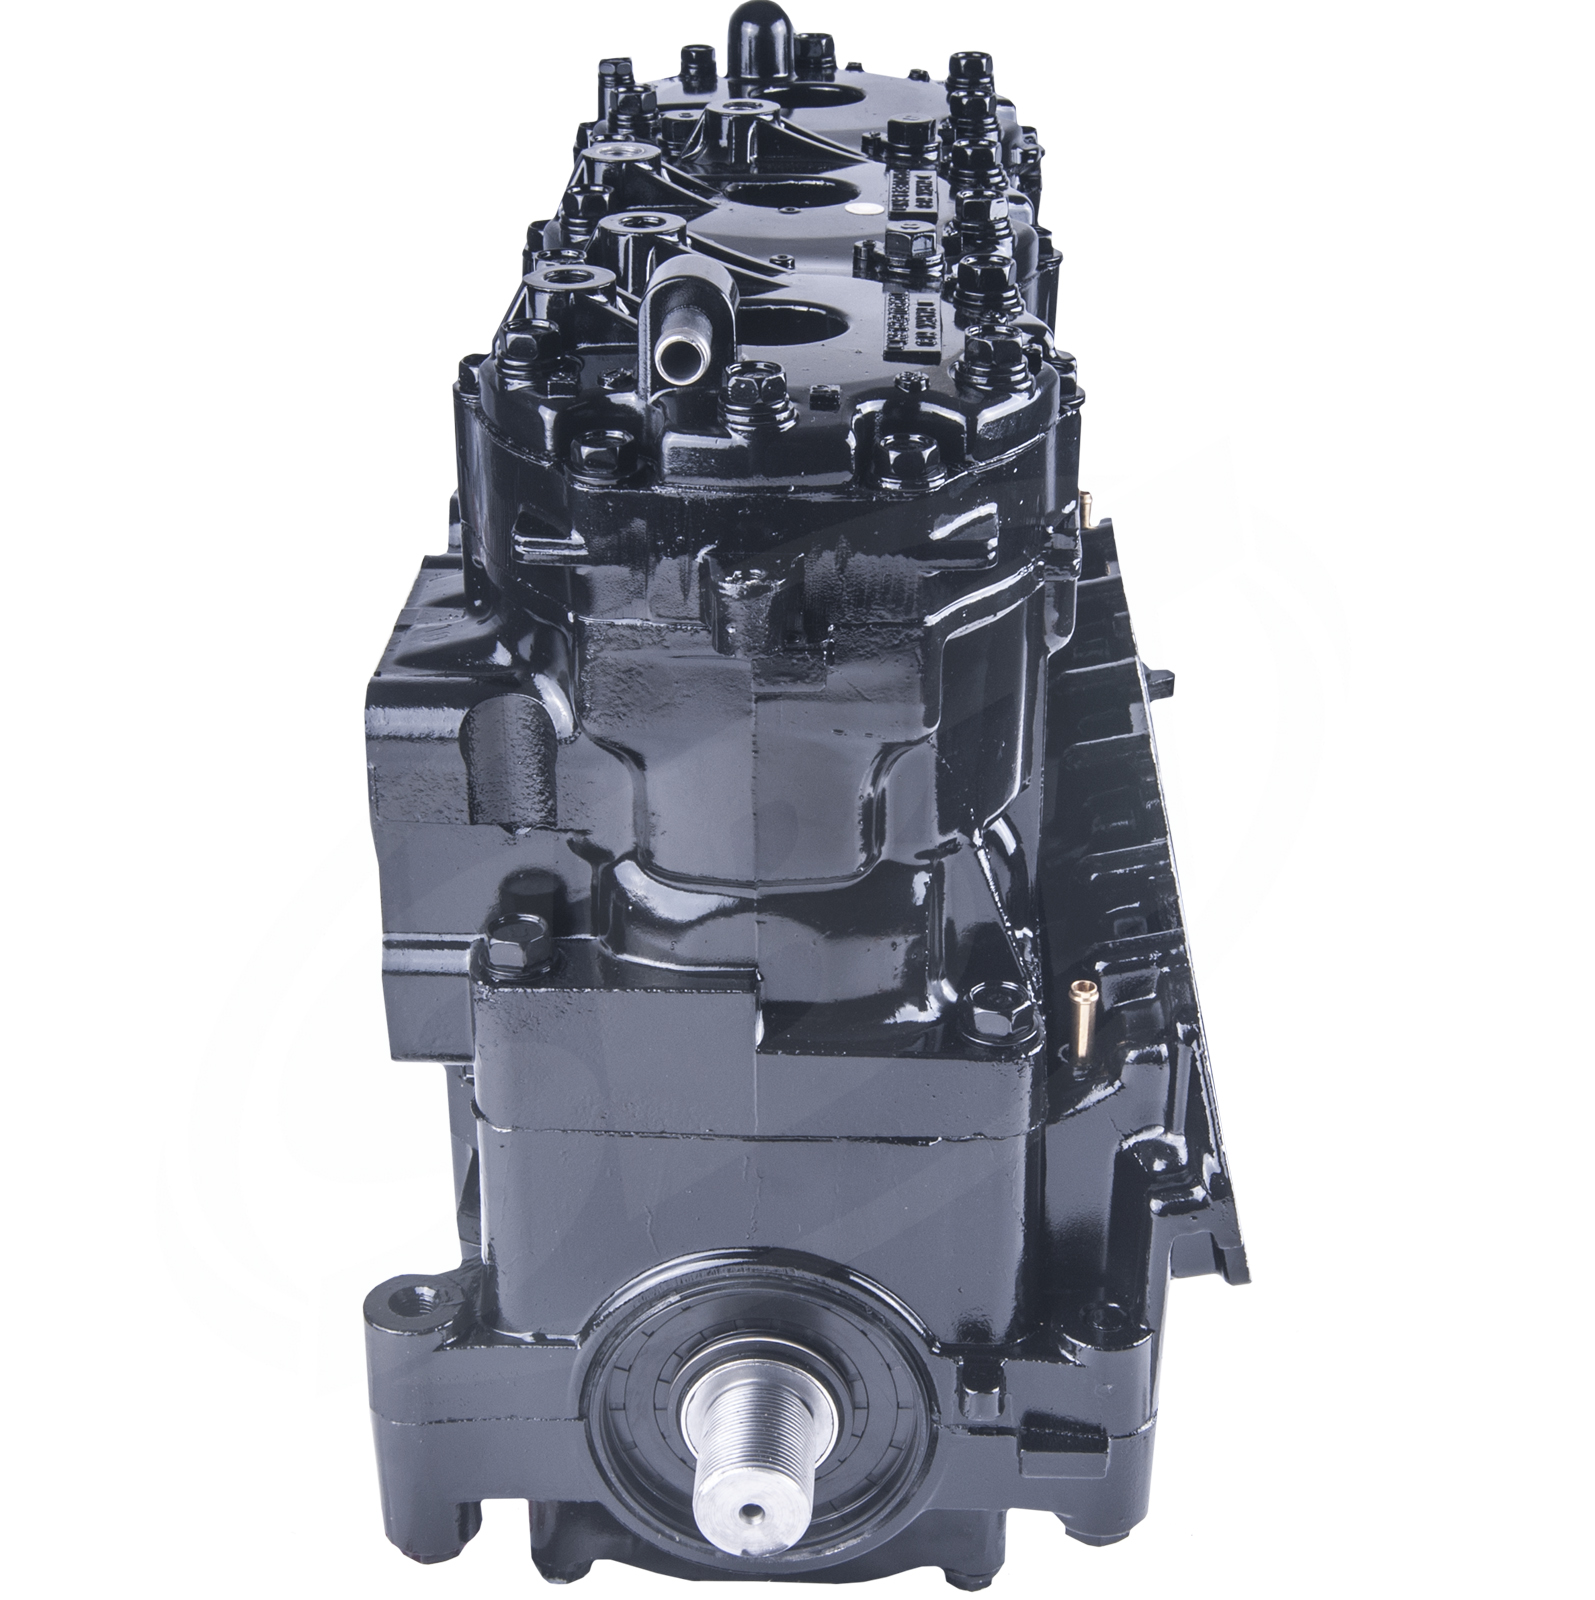 Yamaha 1200 Cylinder Sleeve GP1200 XL 1200 SUV LX 2000 LS 2000 Exciter 270 Non PV Engines